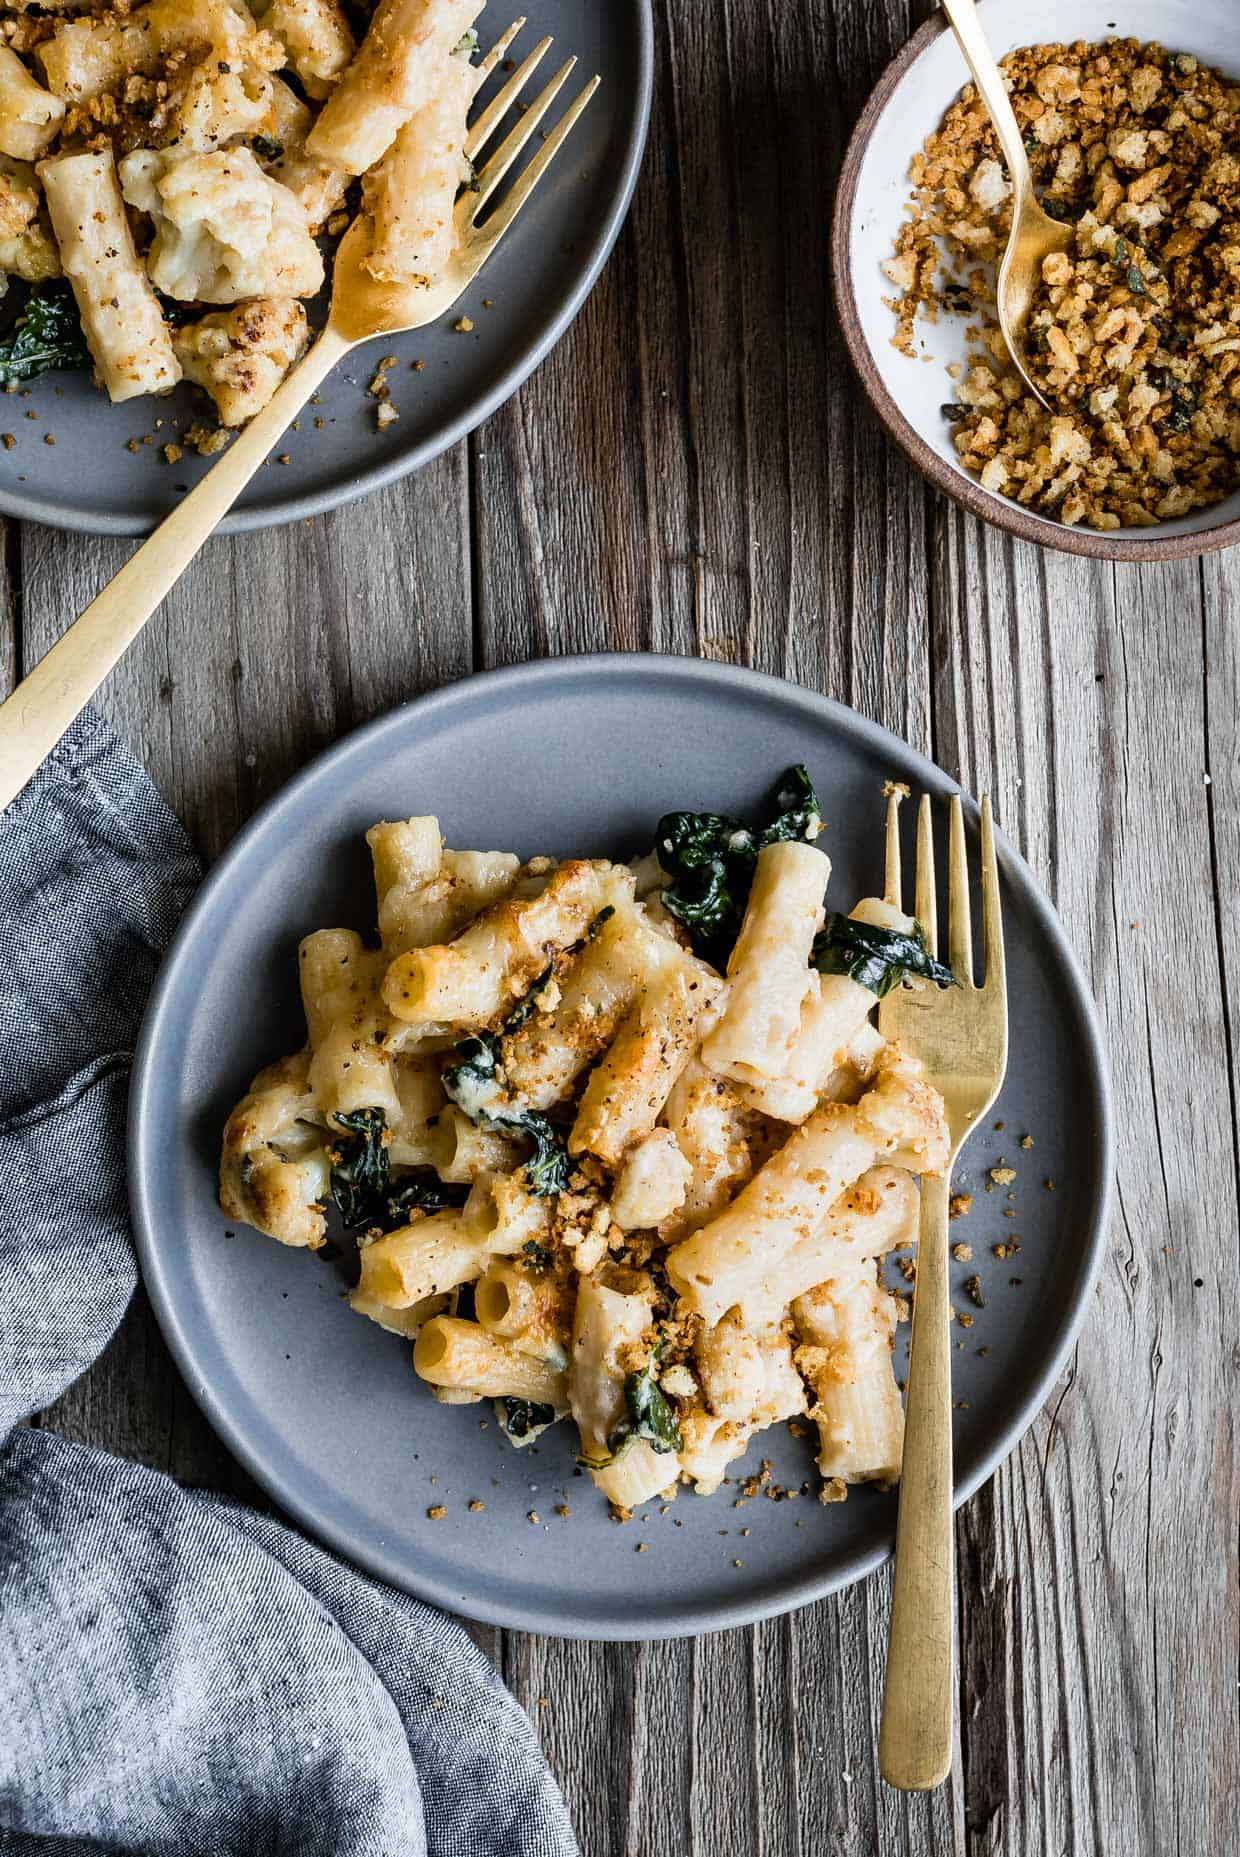 Creamy Gluten-Free Vegetable Pasta Bake